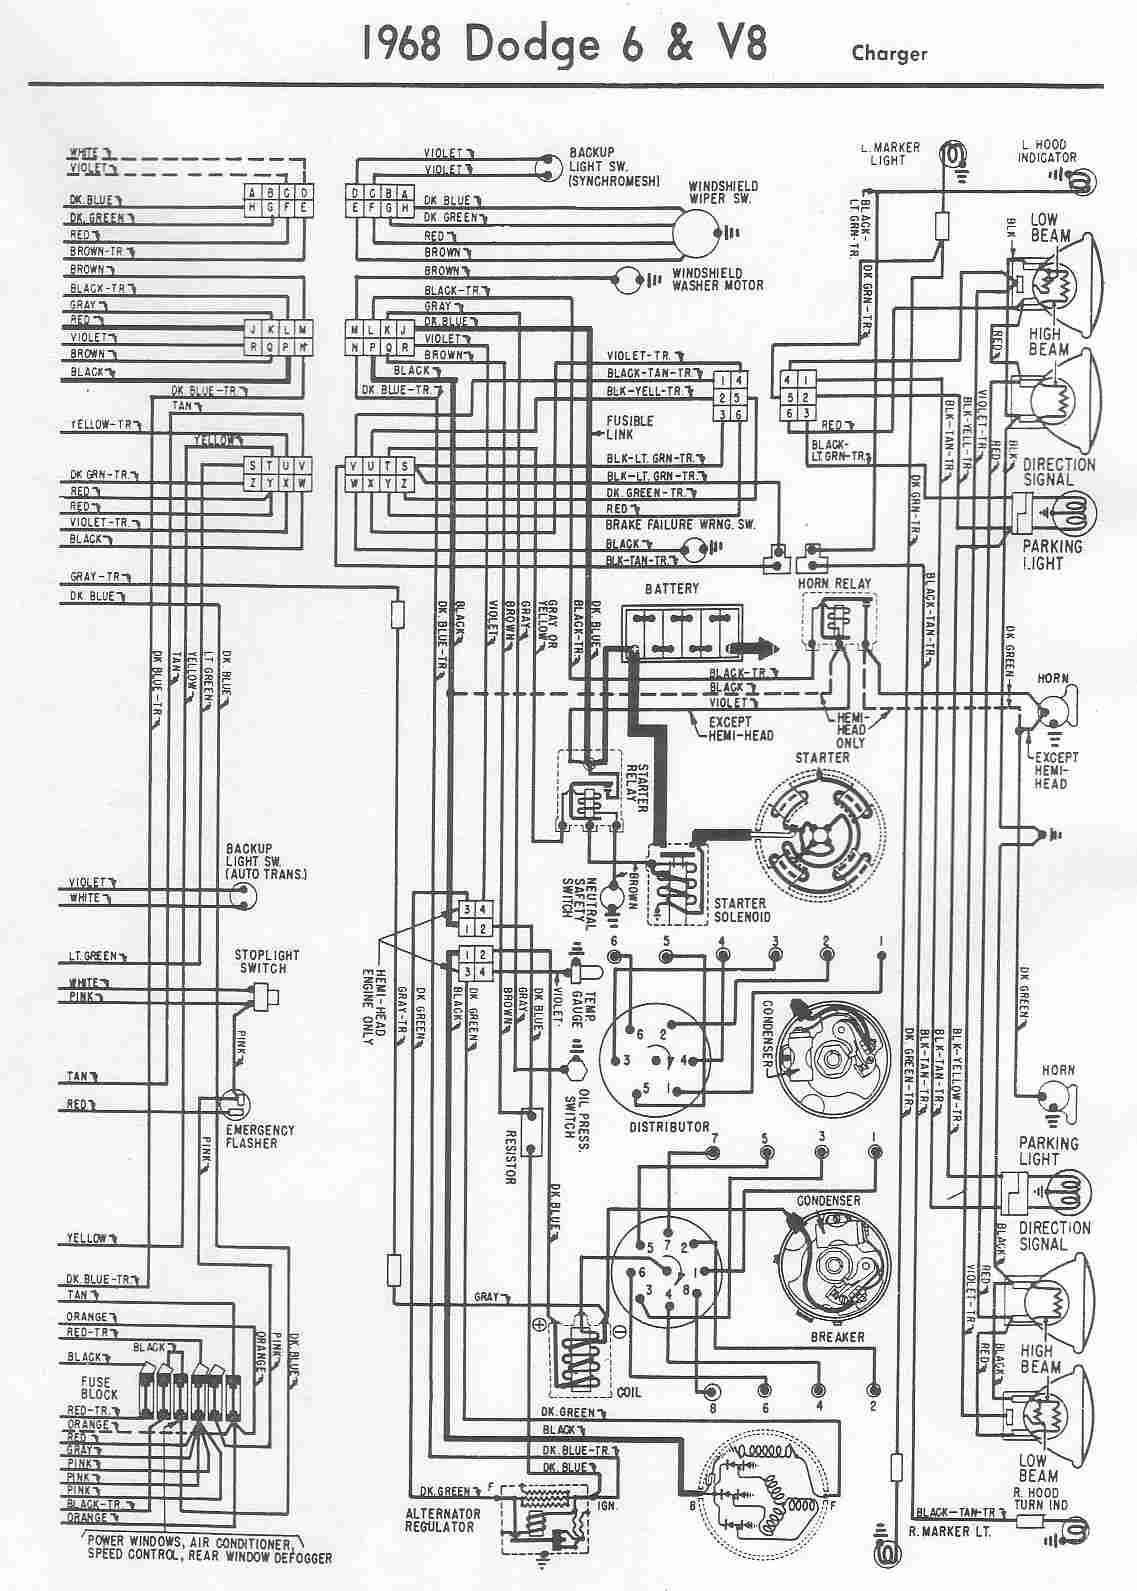 wiring diagram 1968 dodge dart gts trusted wiring diagram u2022 rh soulmatestyle co 1974 dodge dart wiring harness 1972 Dodge Dart Wiring-Diagram